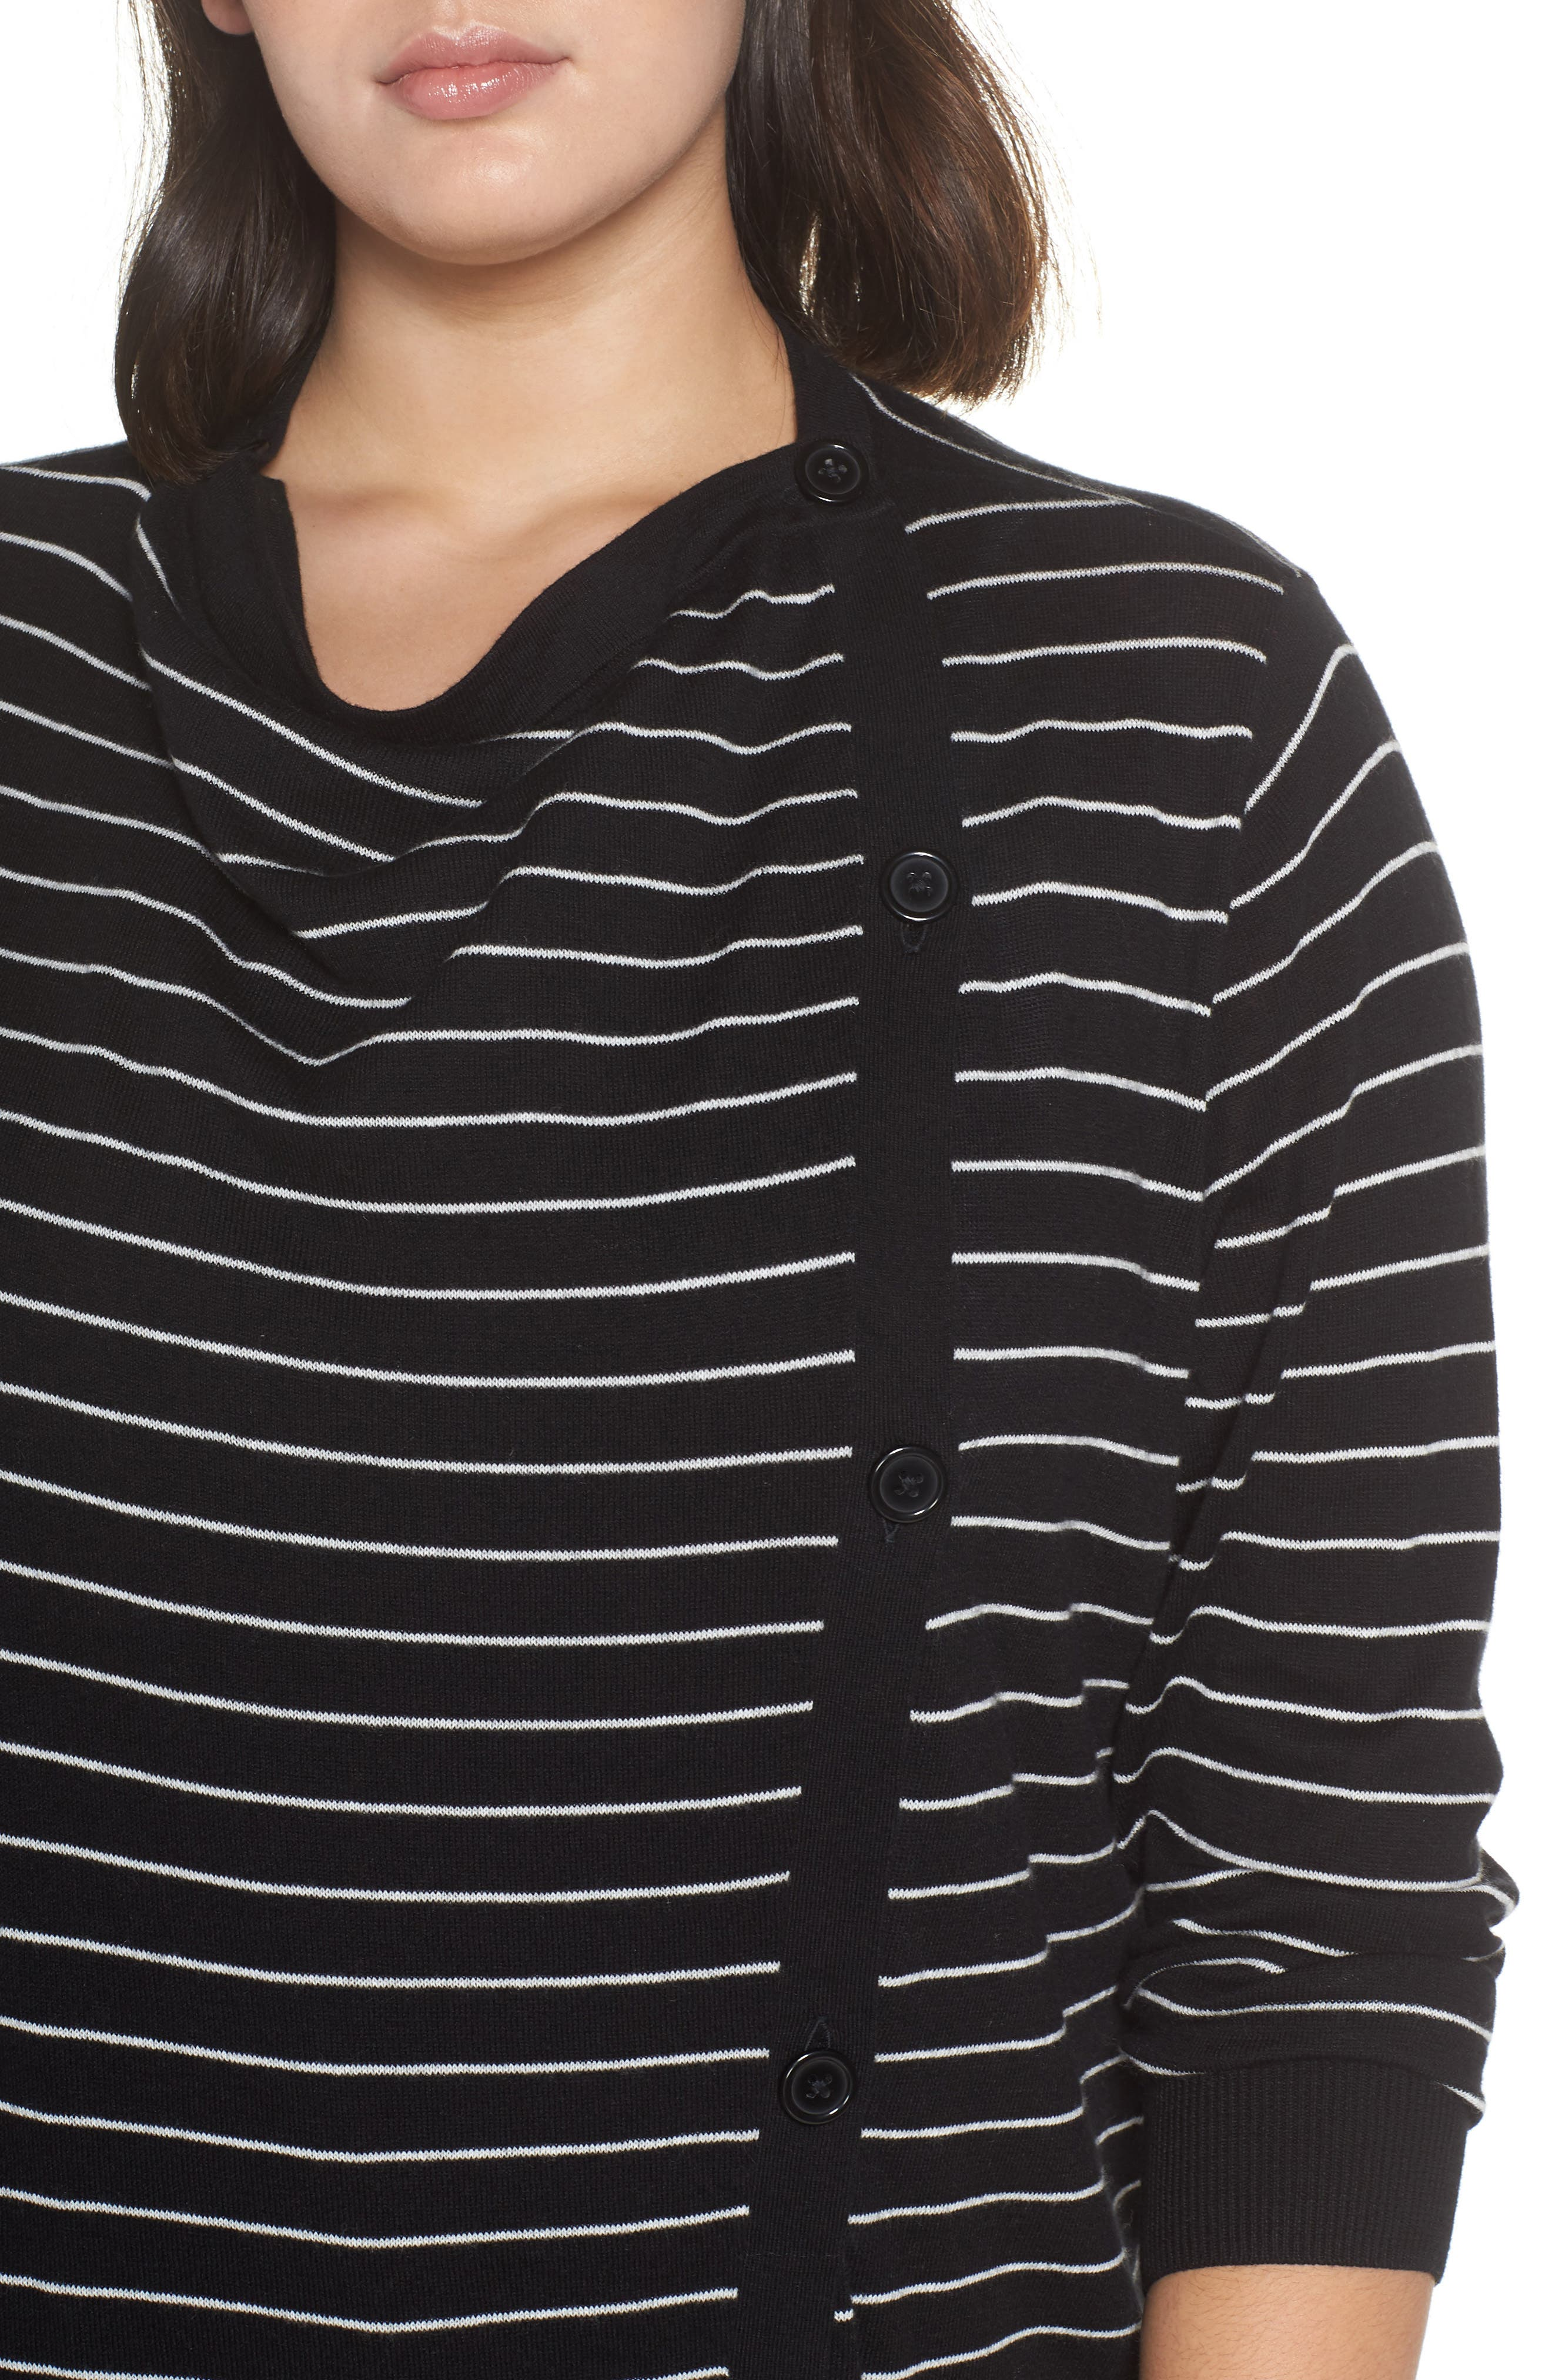 Button-Up Waterfall Cardigan,                             Alternate thumbnail 4, color,                             BLACK- IVORY DELIA STRIPE